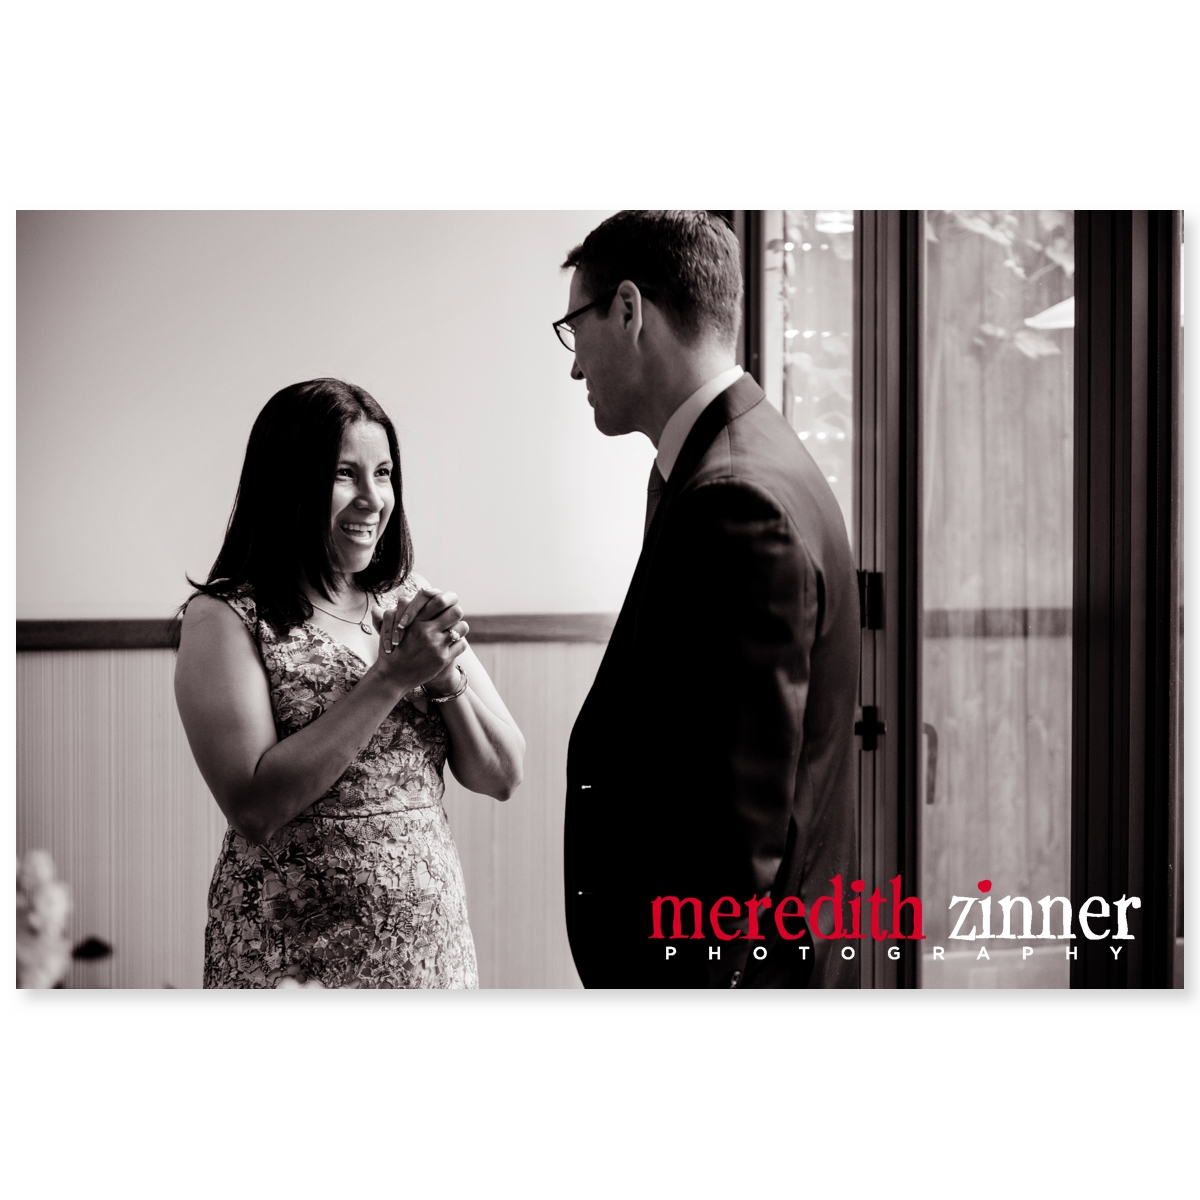 Meredith_Zinner_Photography_StilesCelebration_0213